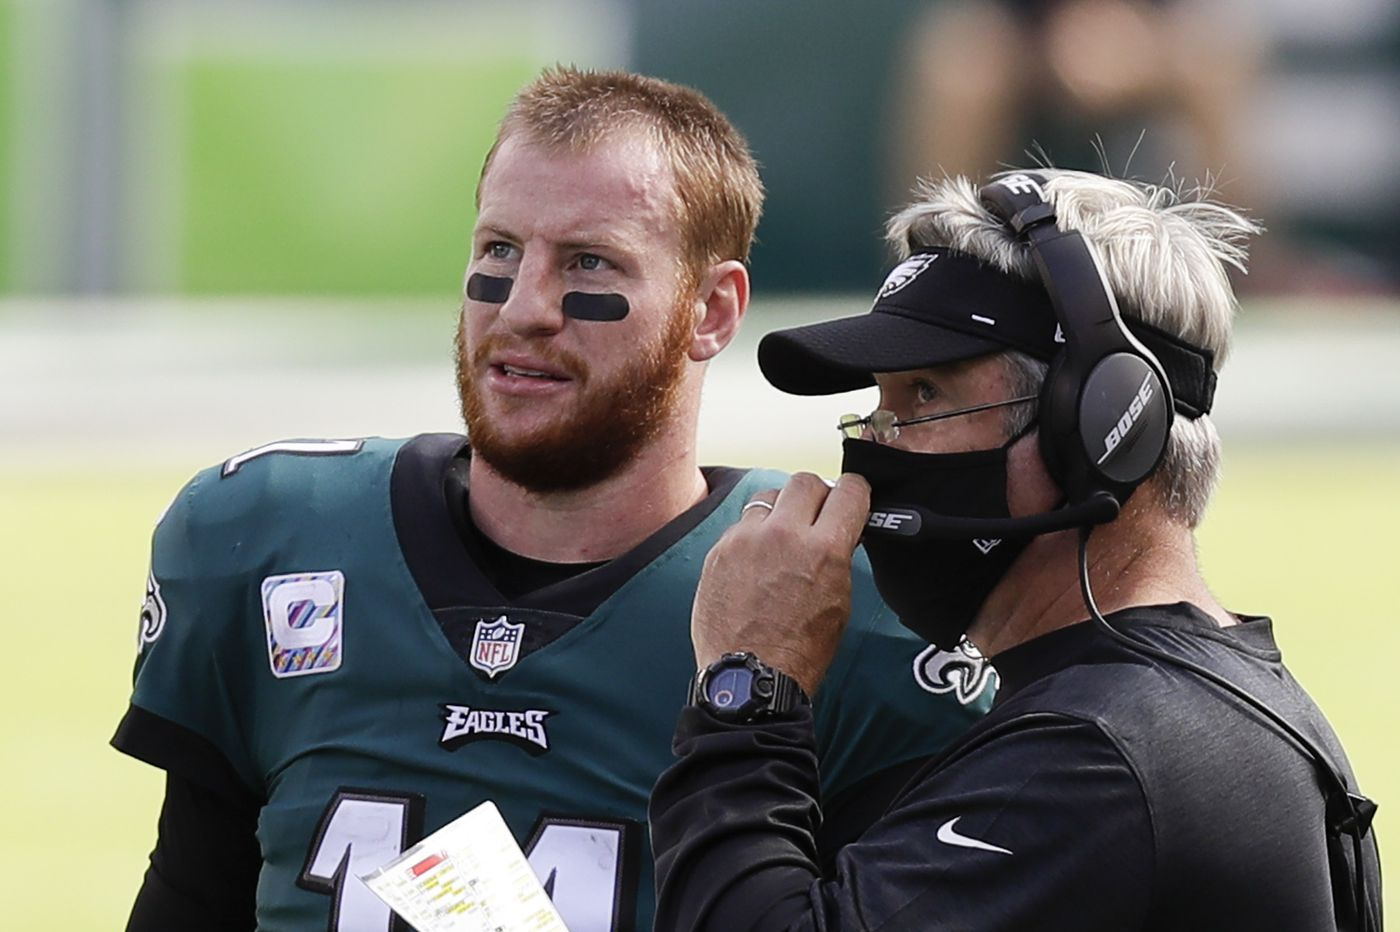 Doug Pederson says he should have called timeout before the Eagles' failed 2-point conversion